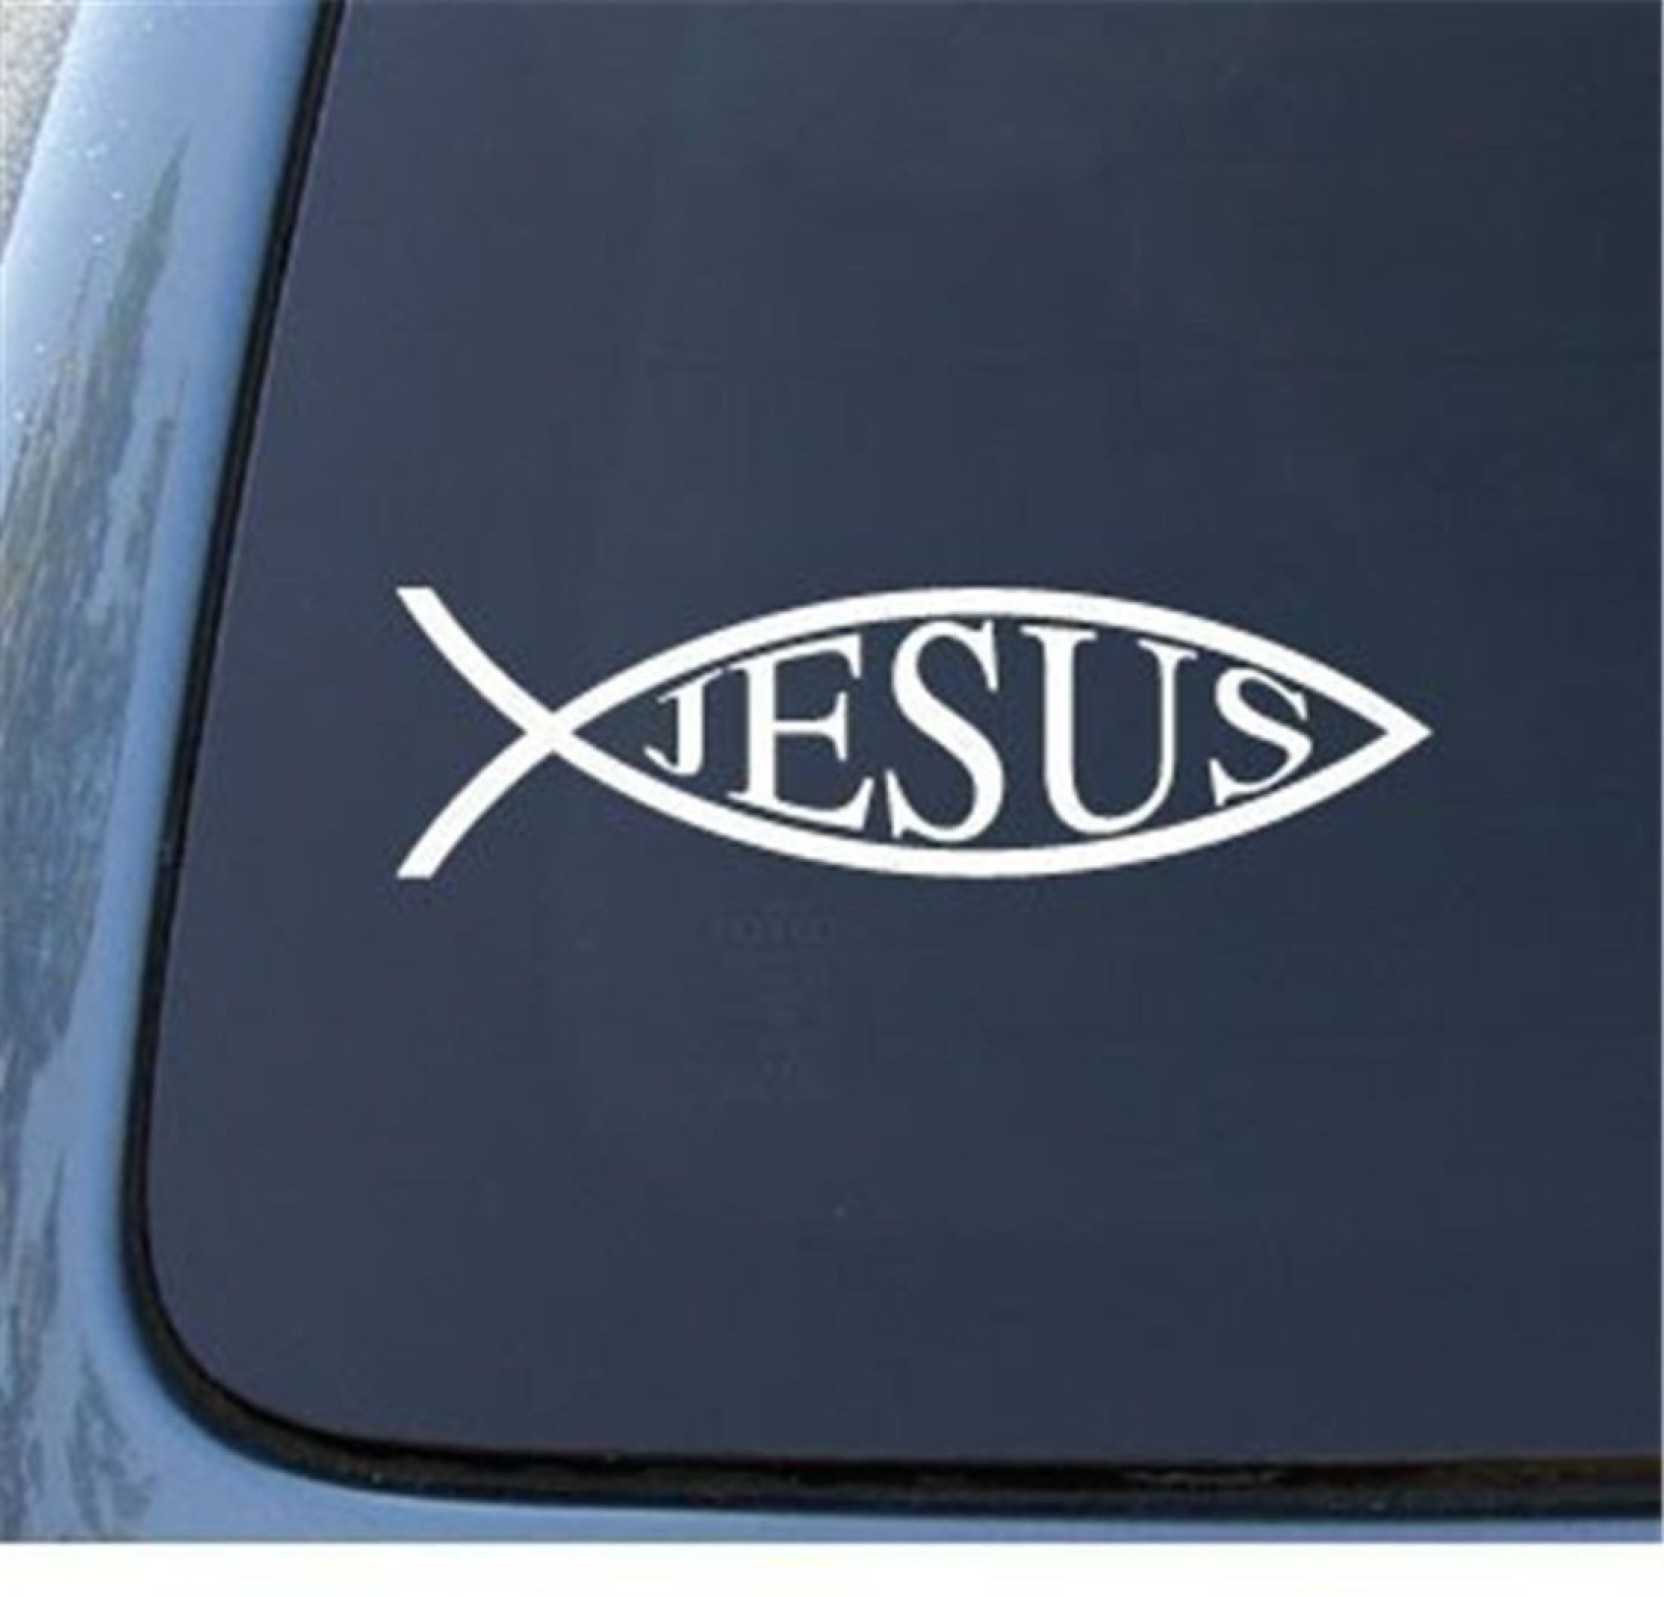 Gadgets wrap medium gadgets wrap jesus fish car window vinyl decal sticker 5 5 color white notebook die cut sticker sticker pack of 1